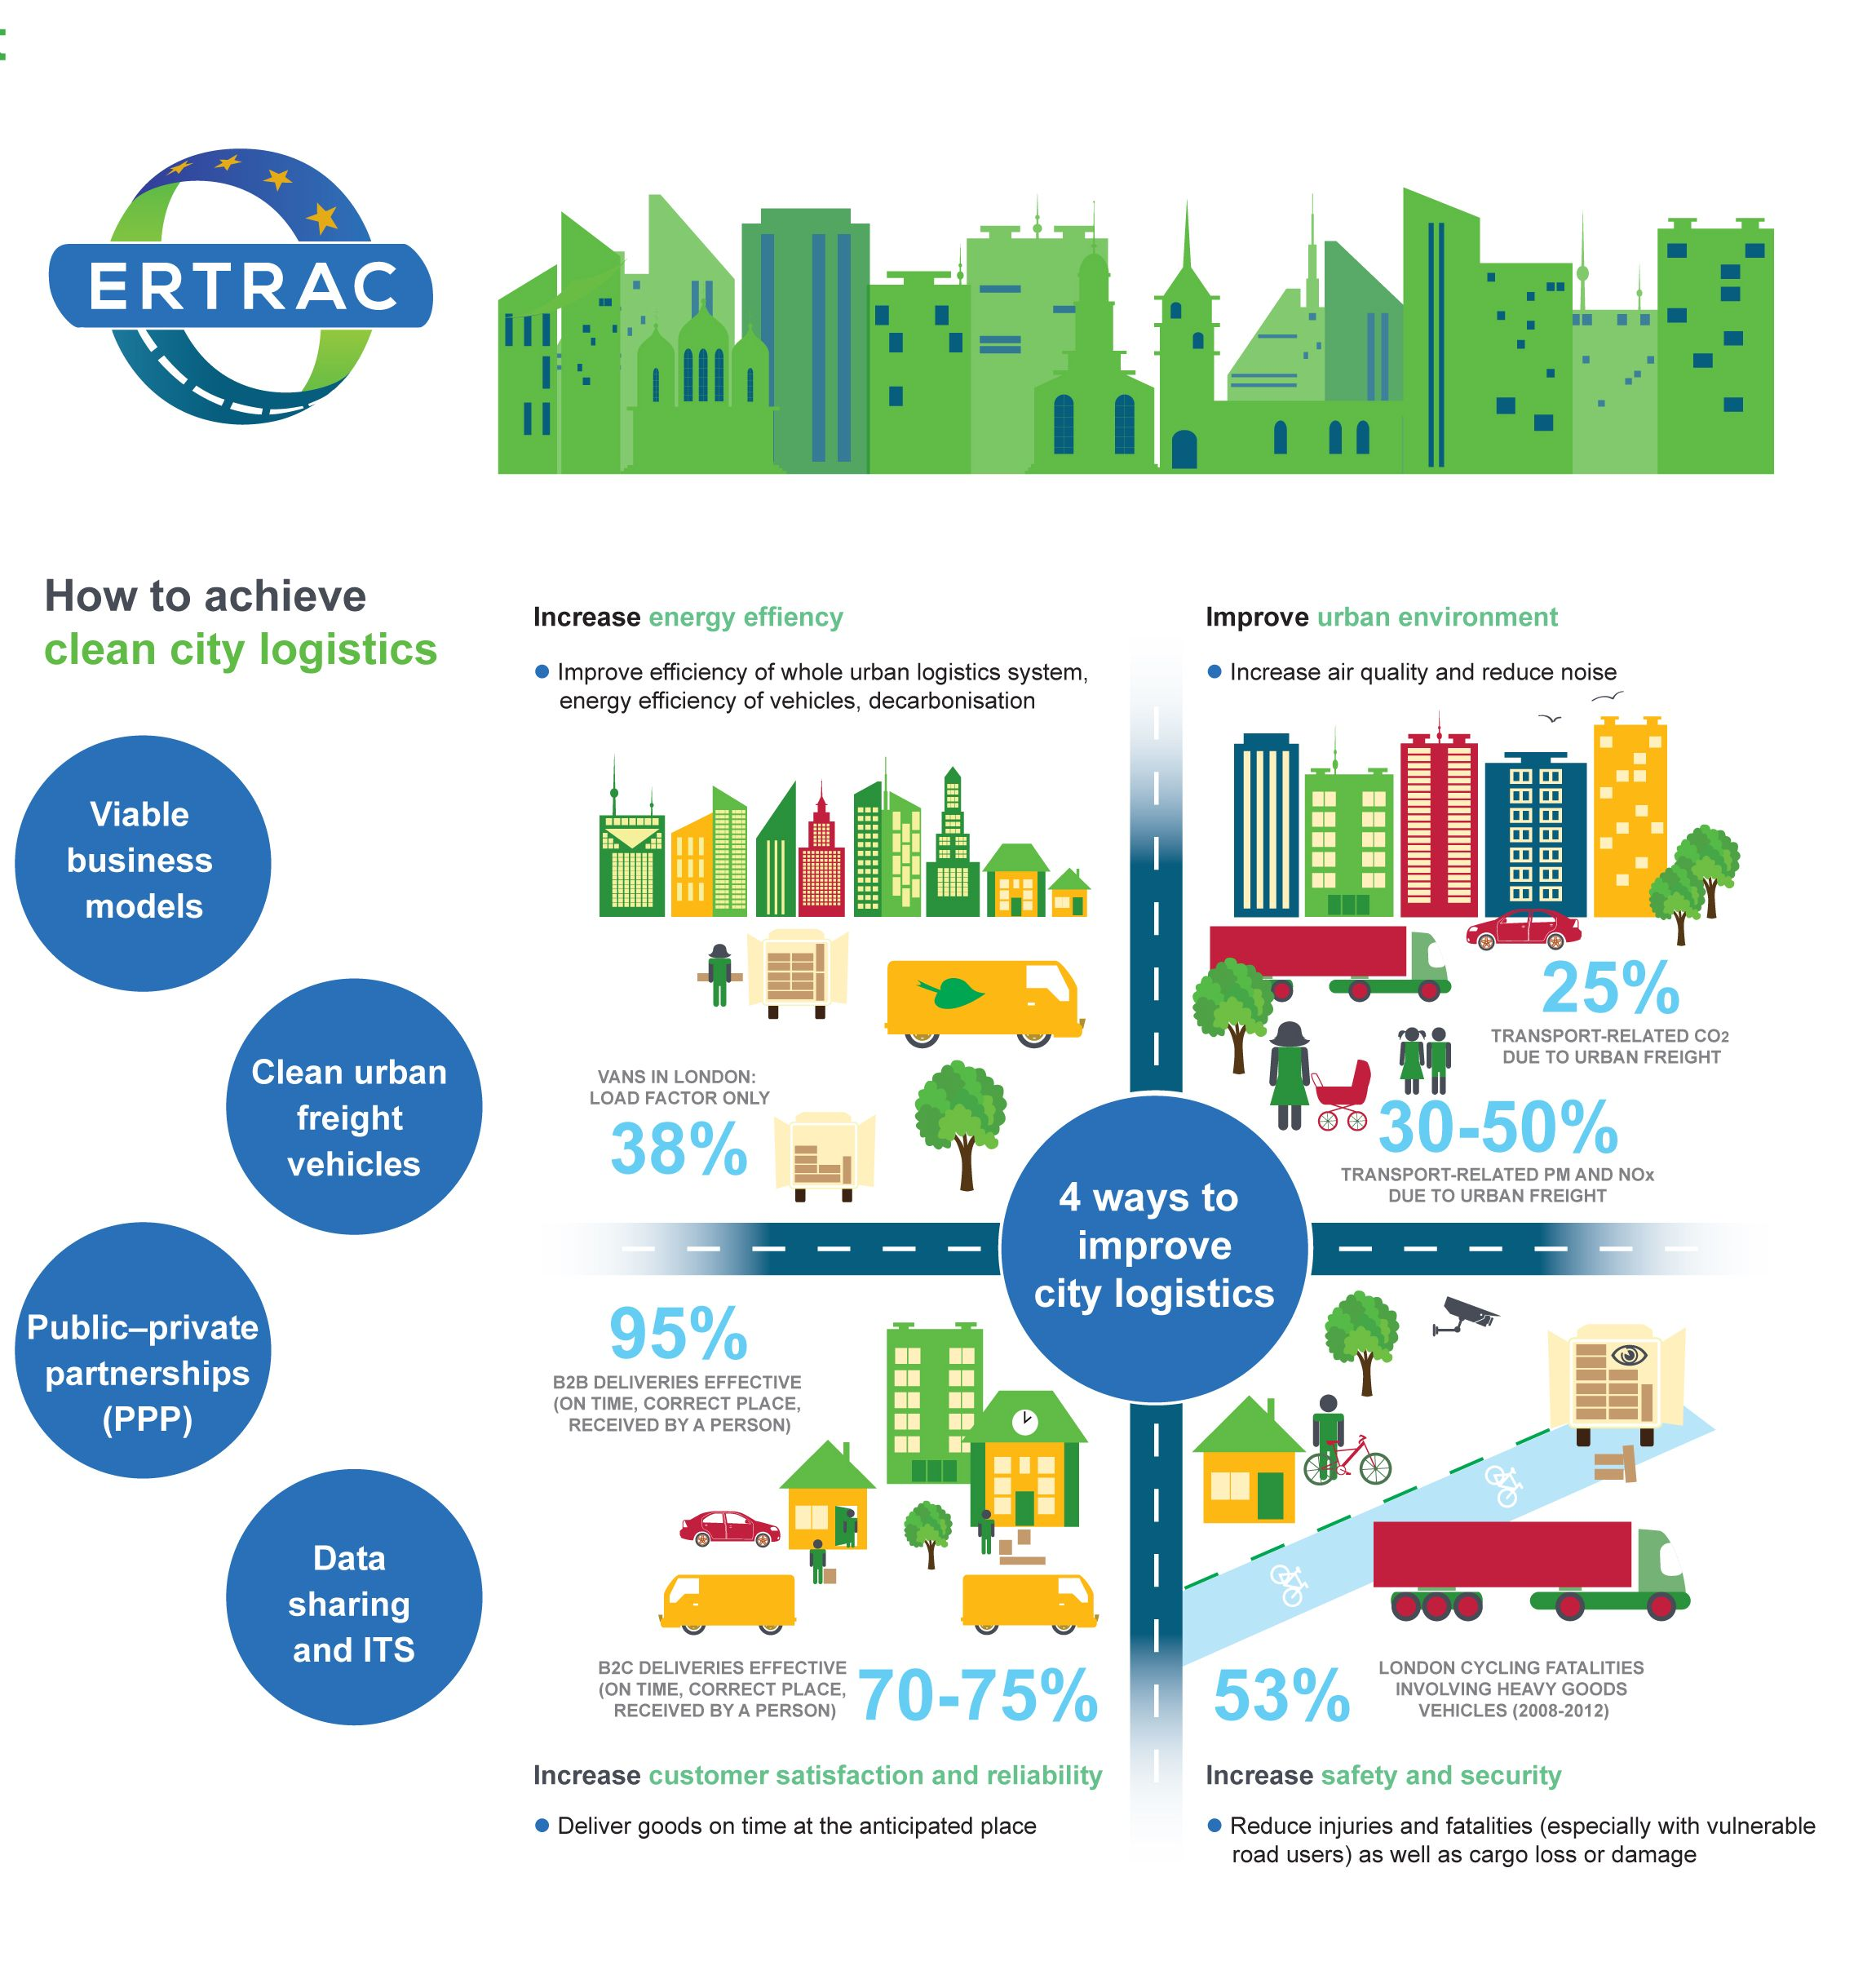 ERTRAC research roadmap: Next steps for urban freight